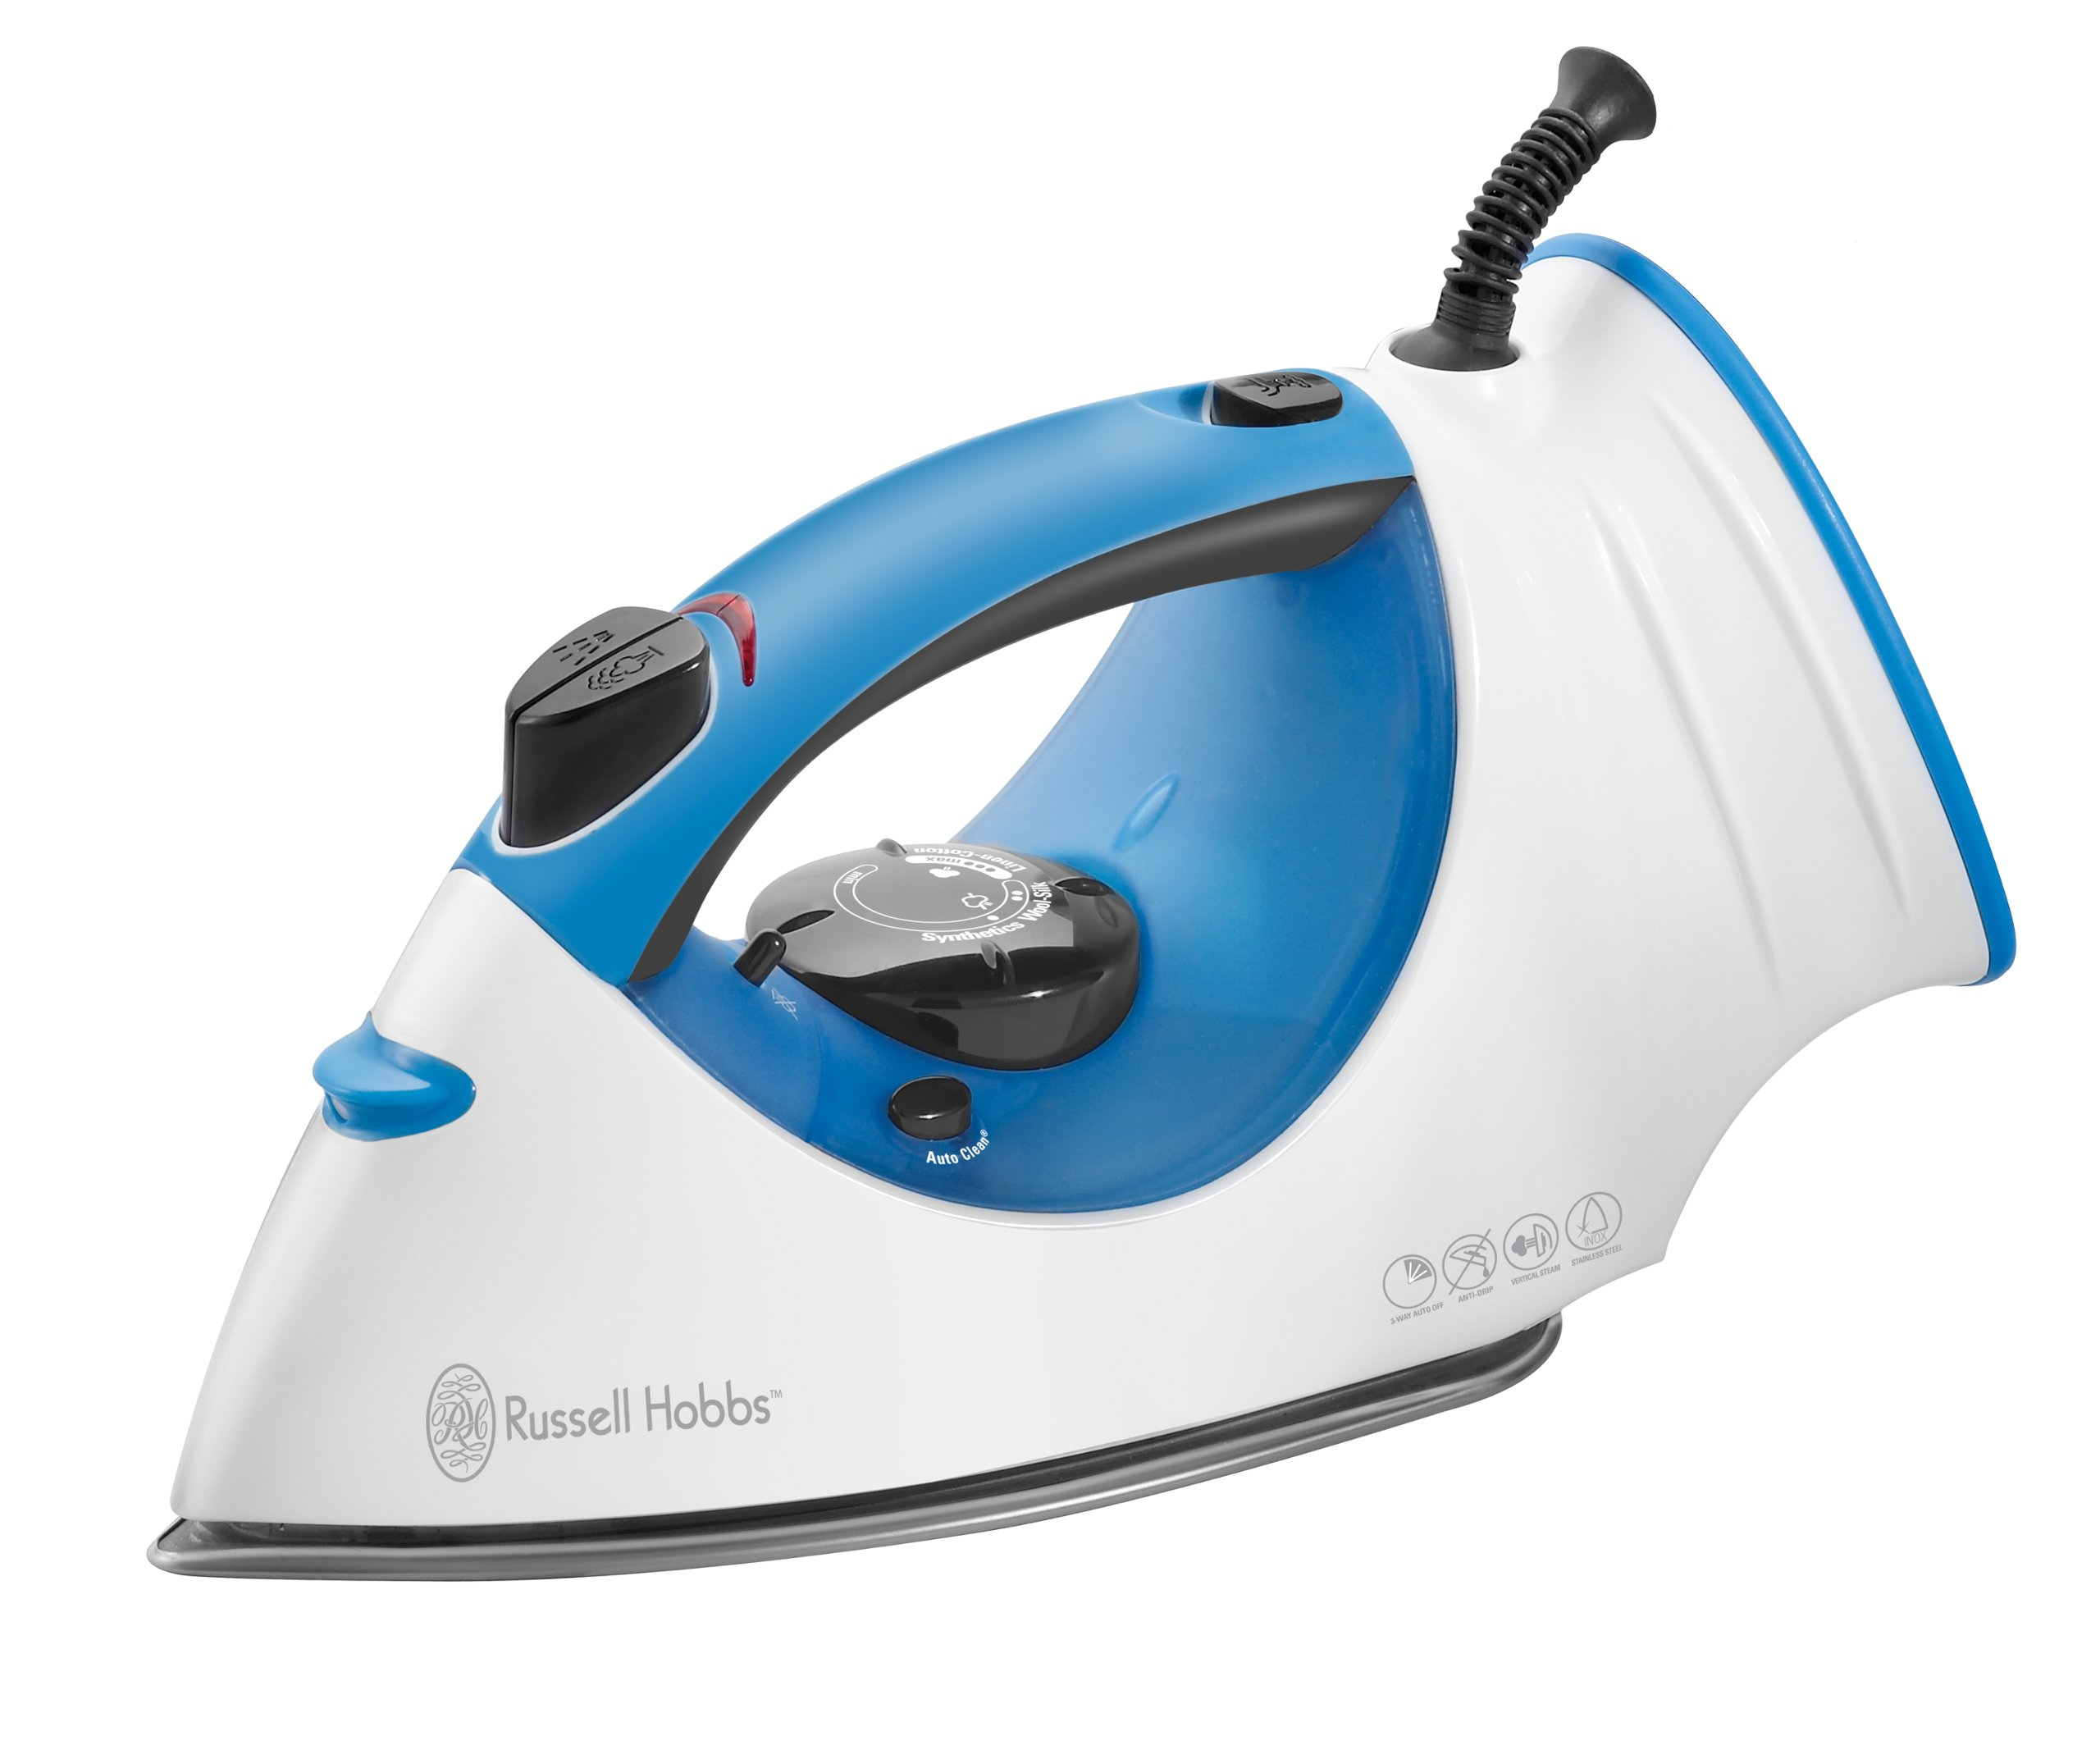 Russell Hobbs IR5000 Easy Fill Iron with Verticle Steam Burst, White/Blue